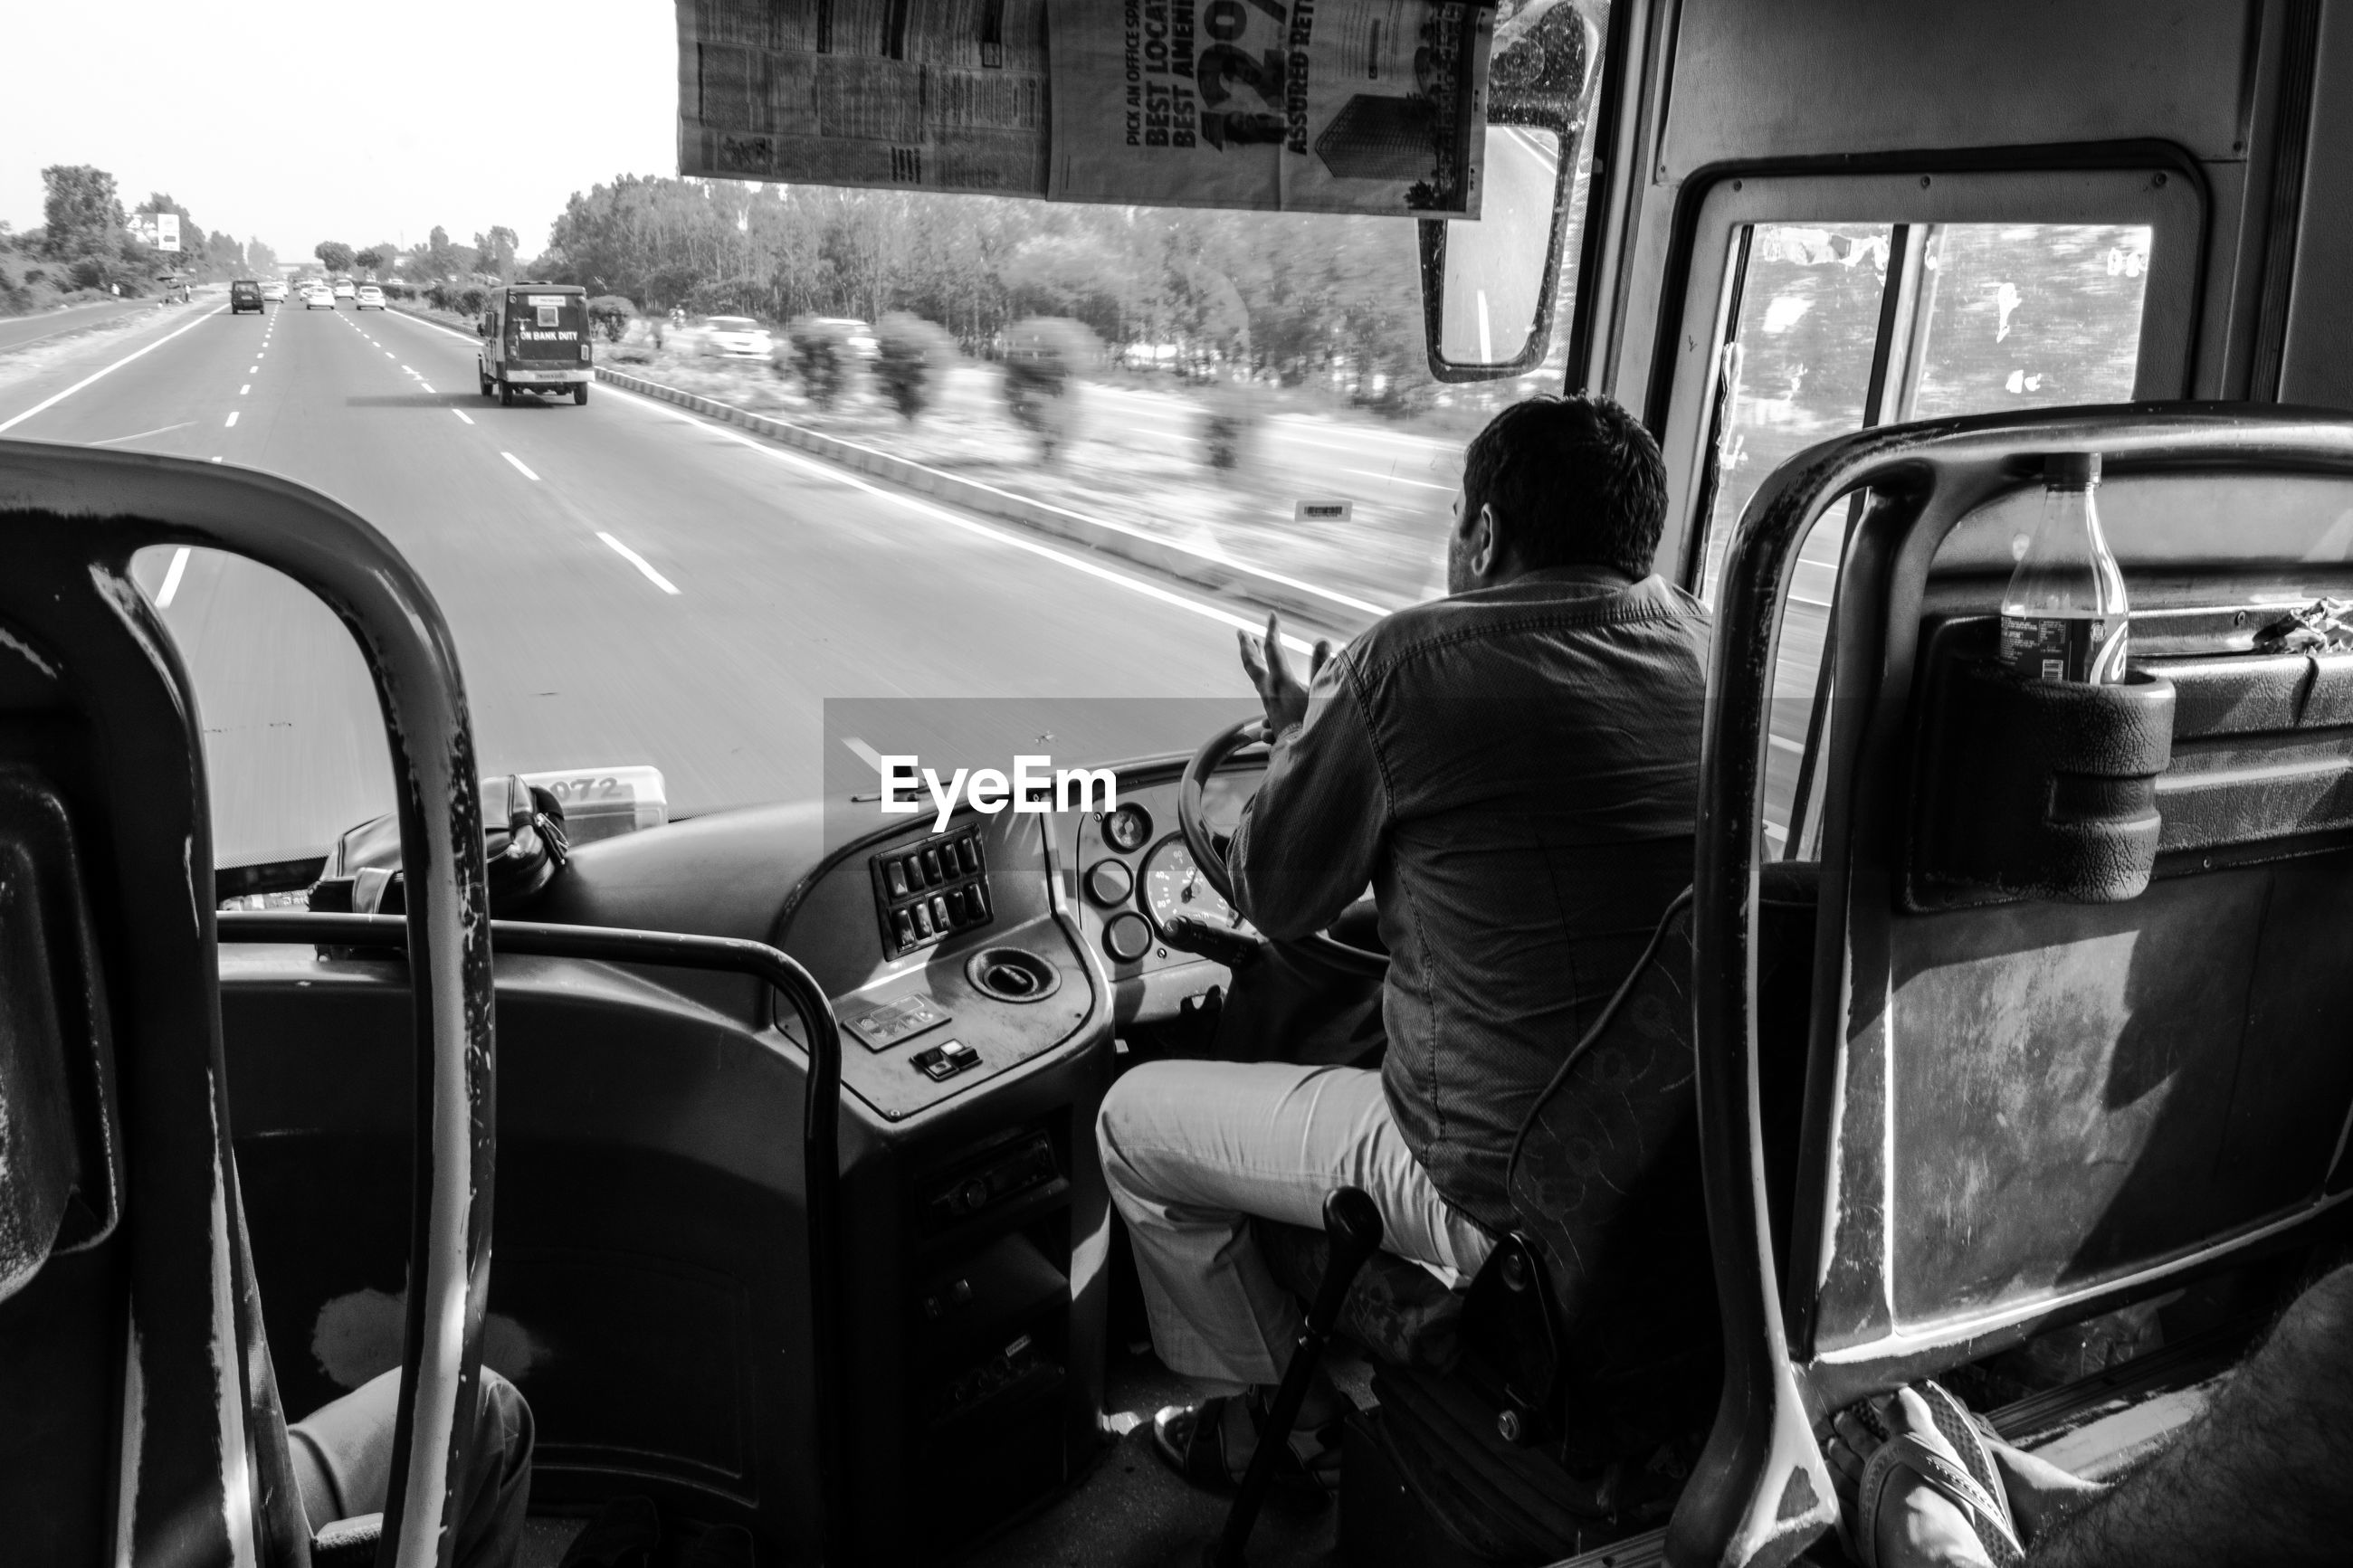 real people, transportation, car, land vehicle, one person, rear view, mode of transport, men, road, day, street, outdoors, lifestyles, motorcycle, city, full length, sitting, architecture, people